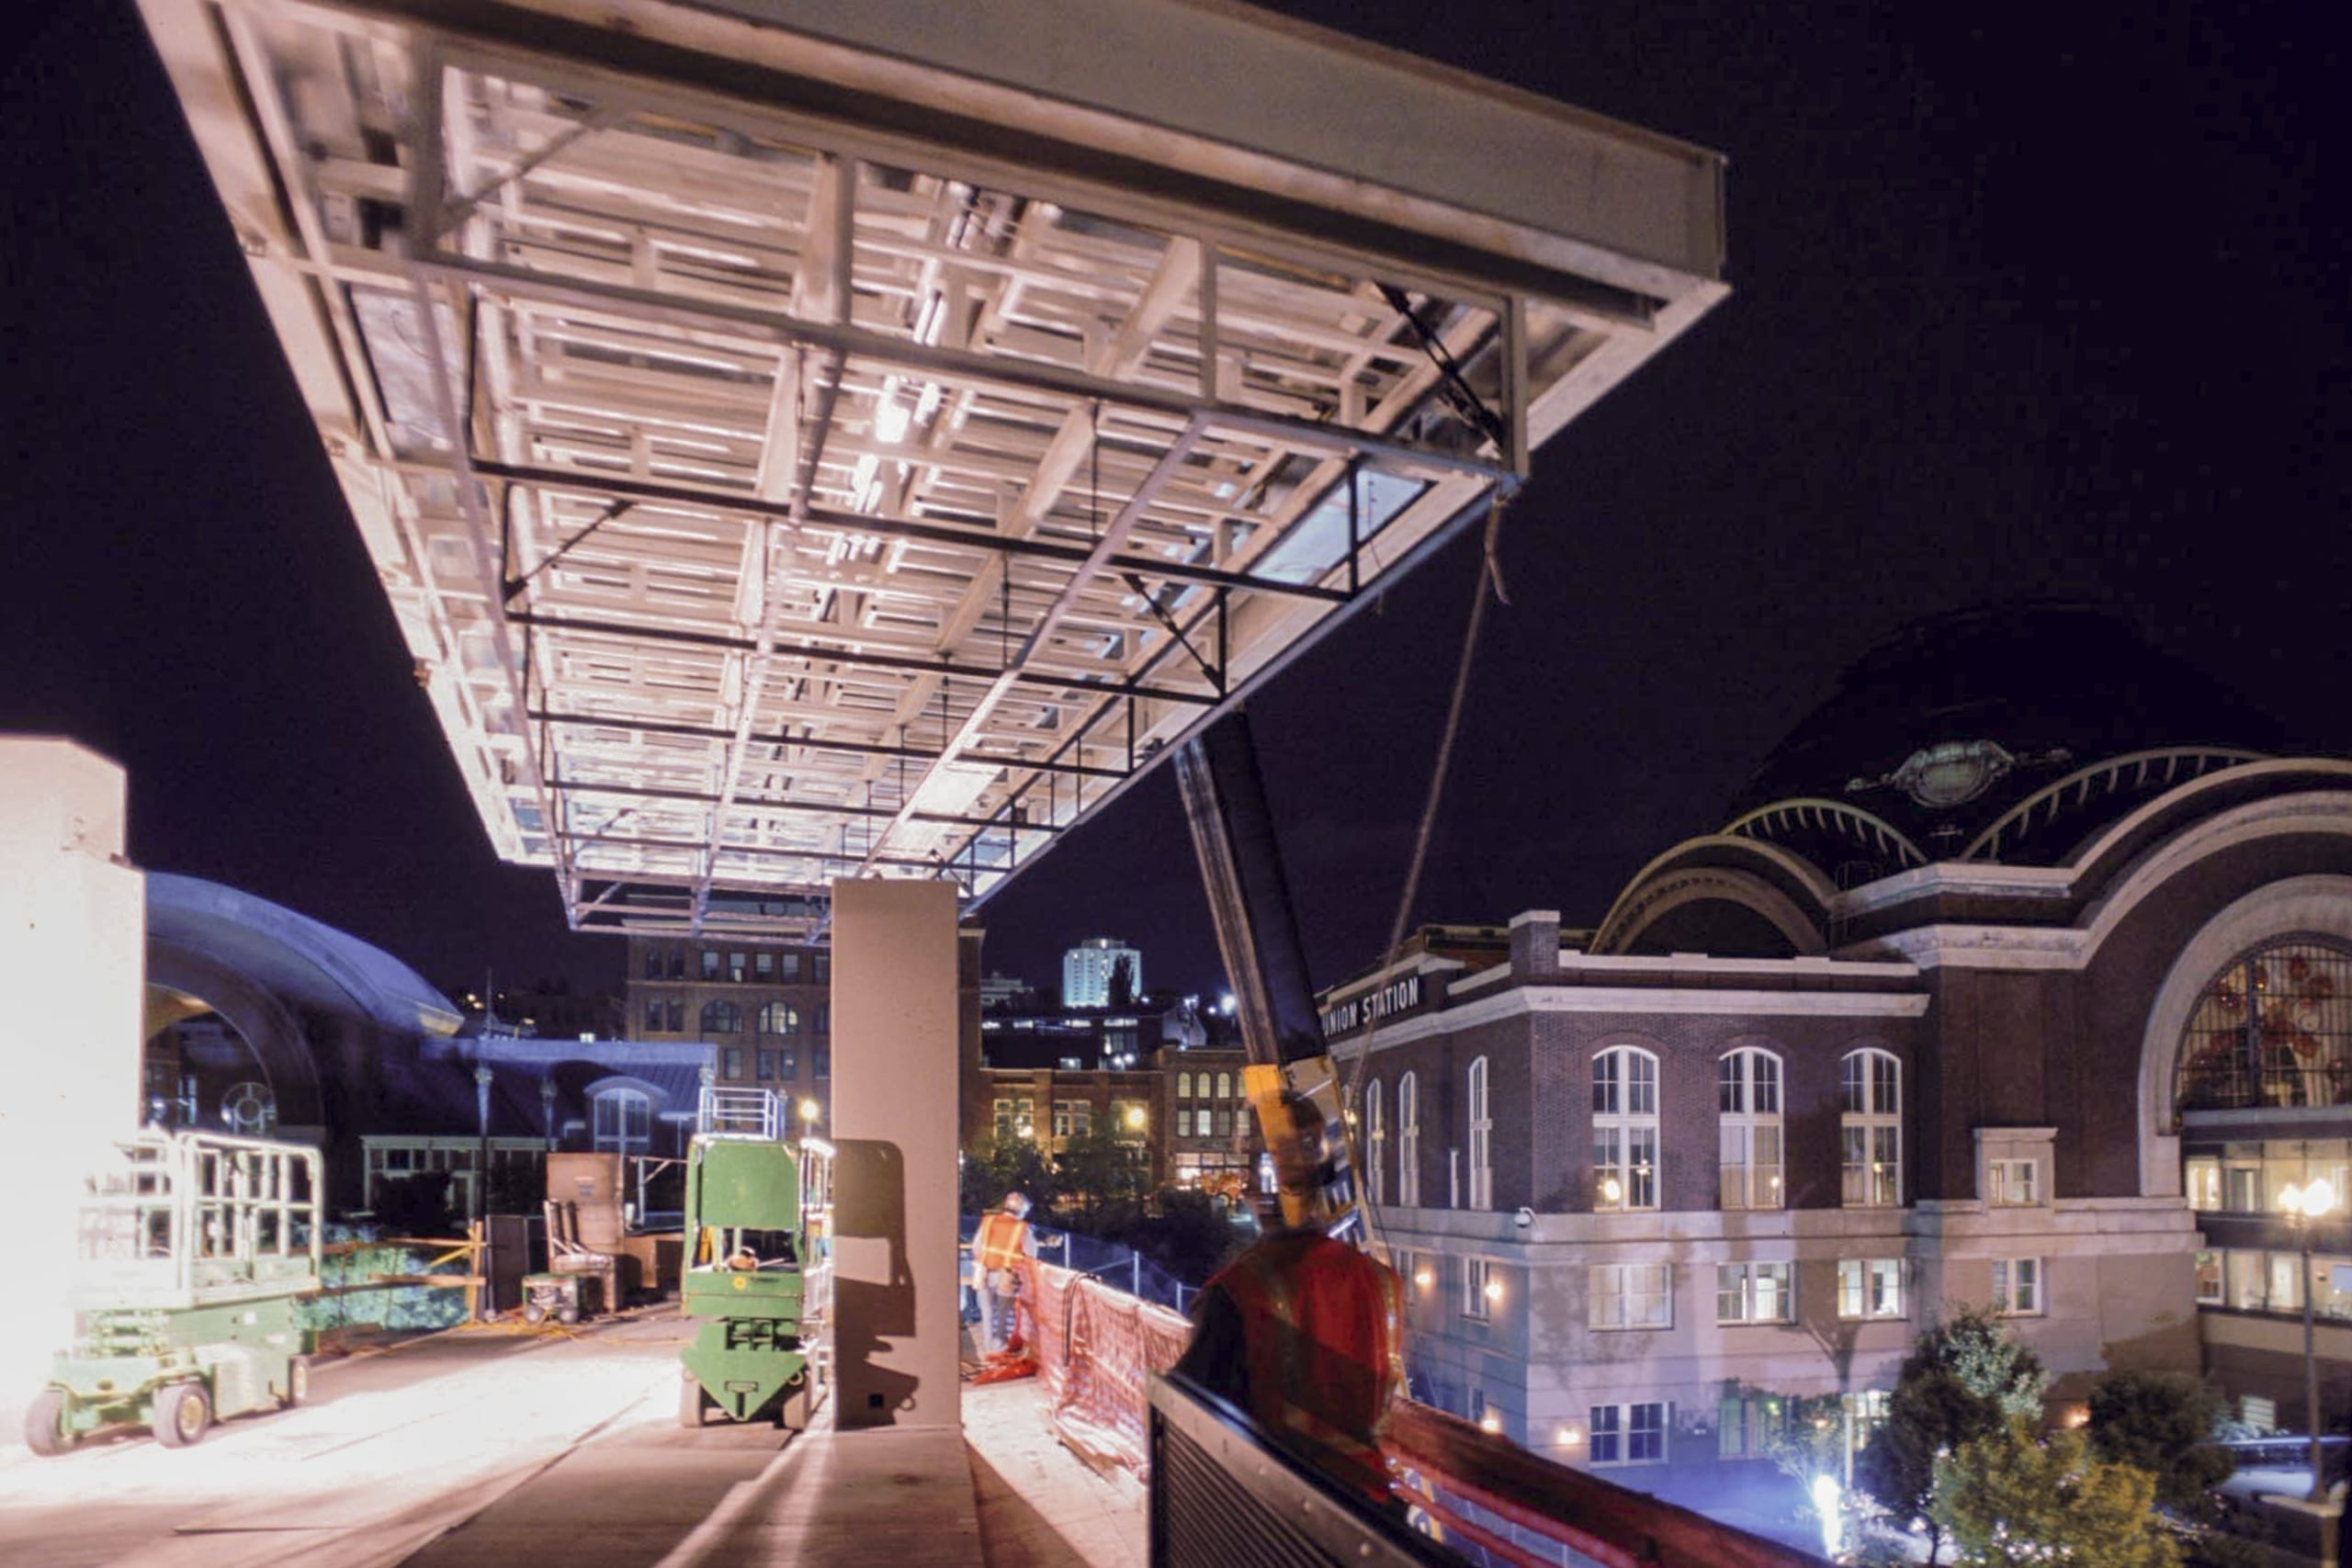 Zahner field construction crew installs the Seaform Pavilion for the Chihuly Bridge of Glass